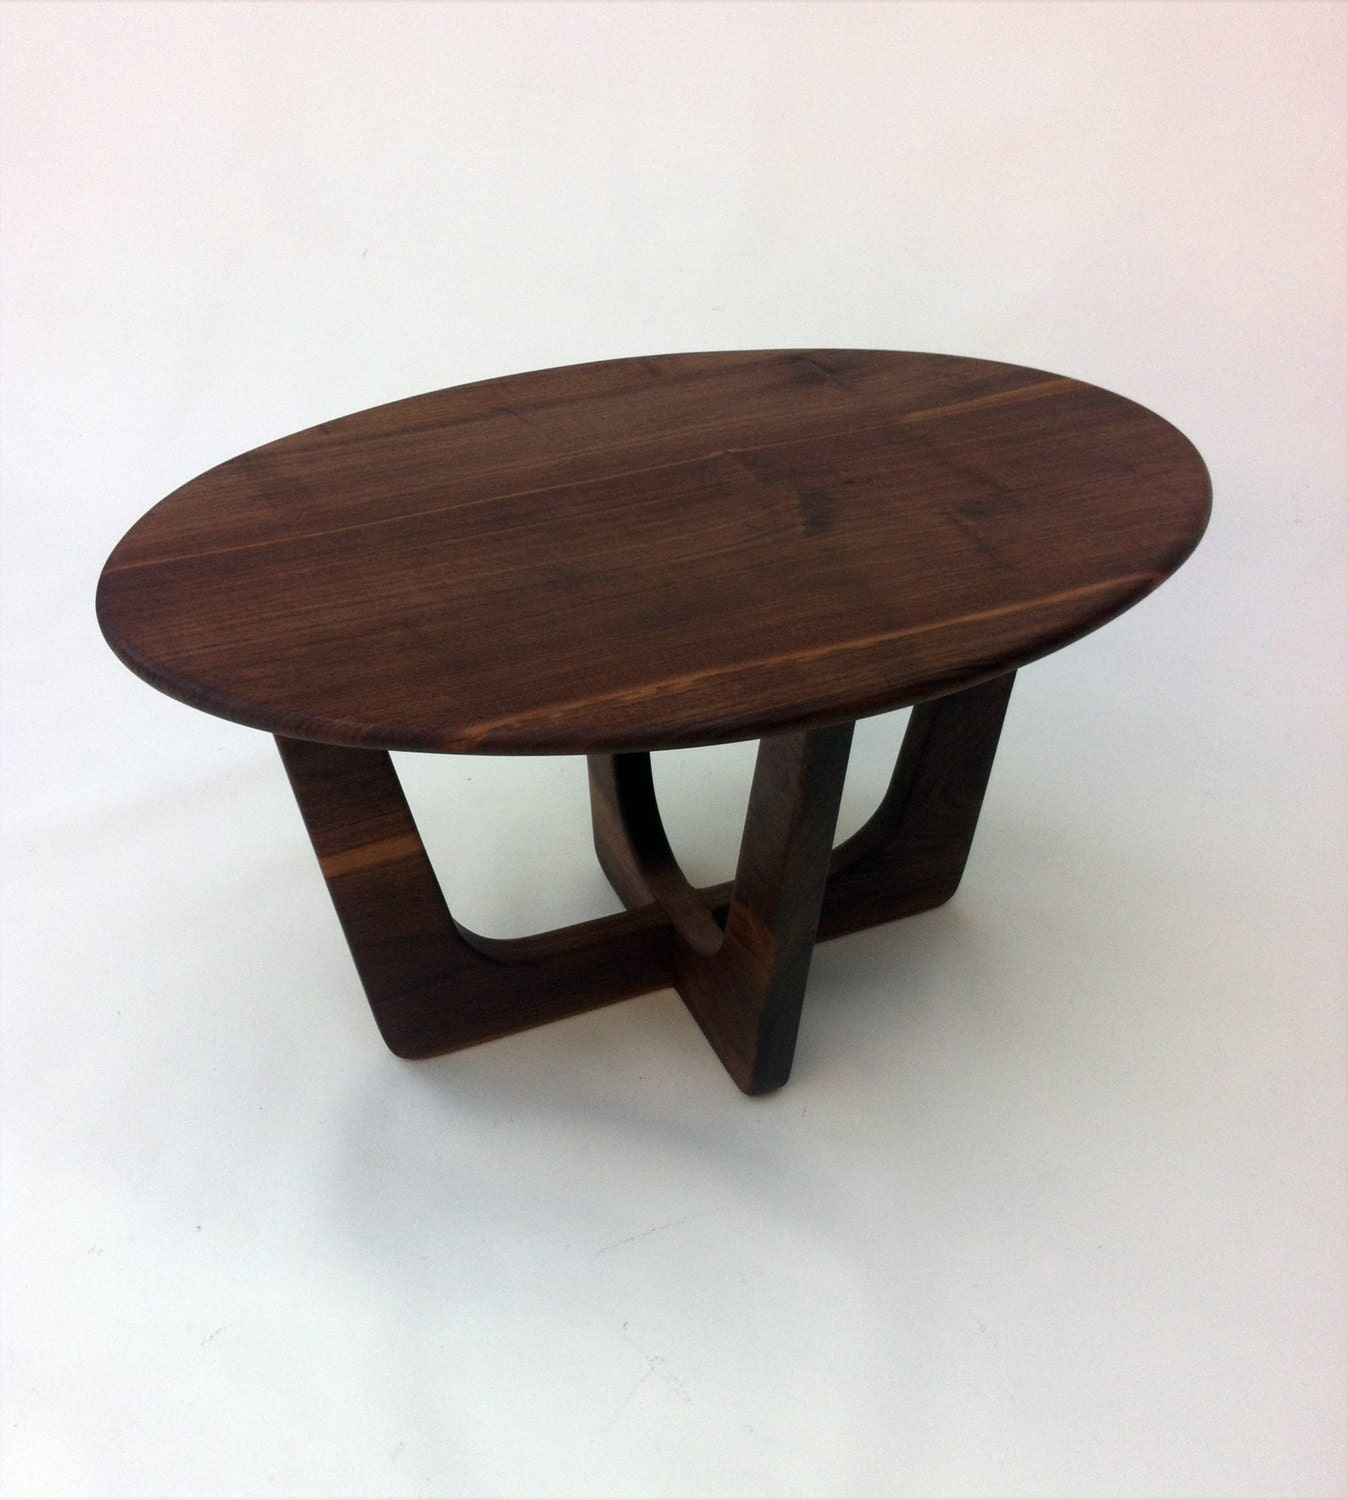 Oval Coffee Table Modern: Pearsall Inspired 23x32 Oval Mid Century Modern Coffee